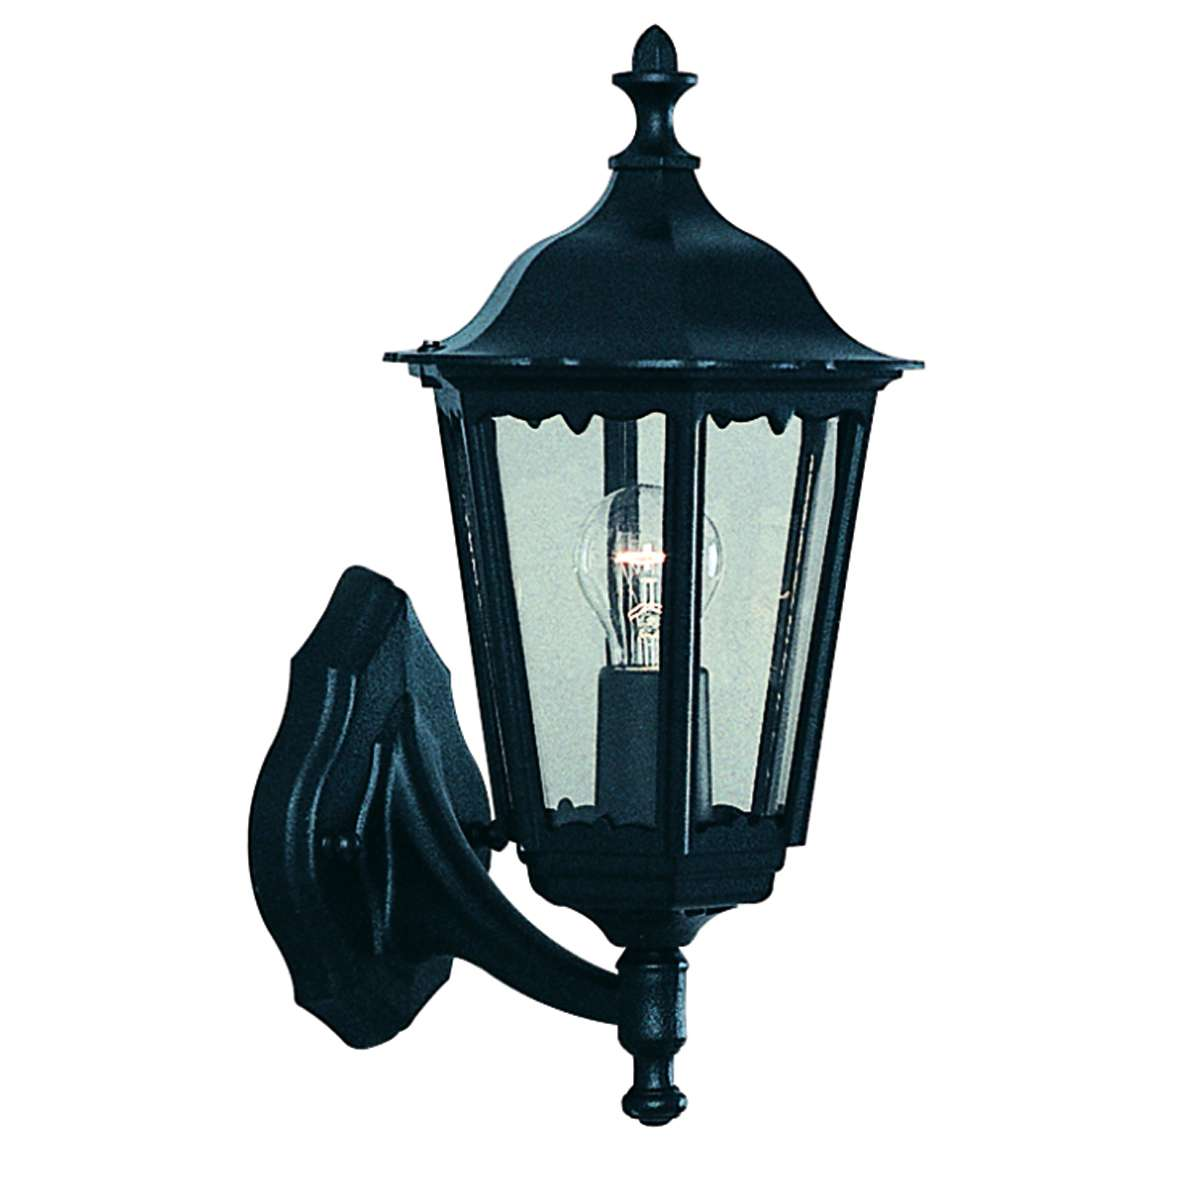 Alex Ip44 Black Outdoor Wall Light With Clear Glass